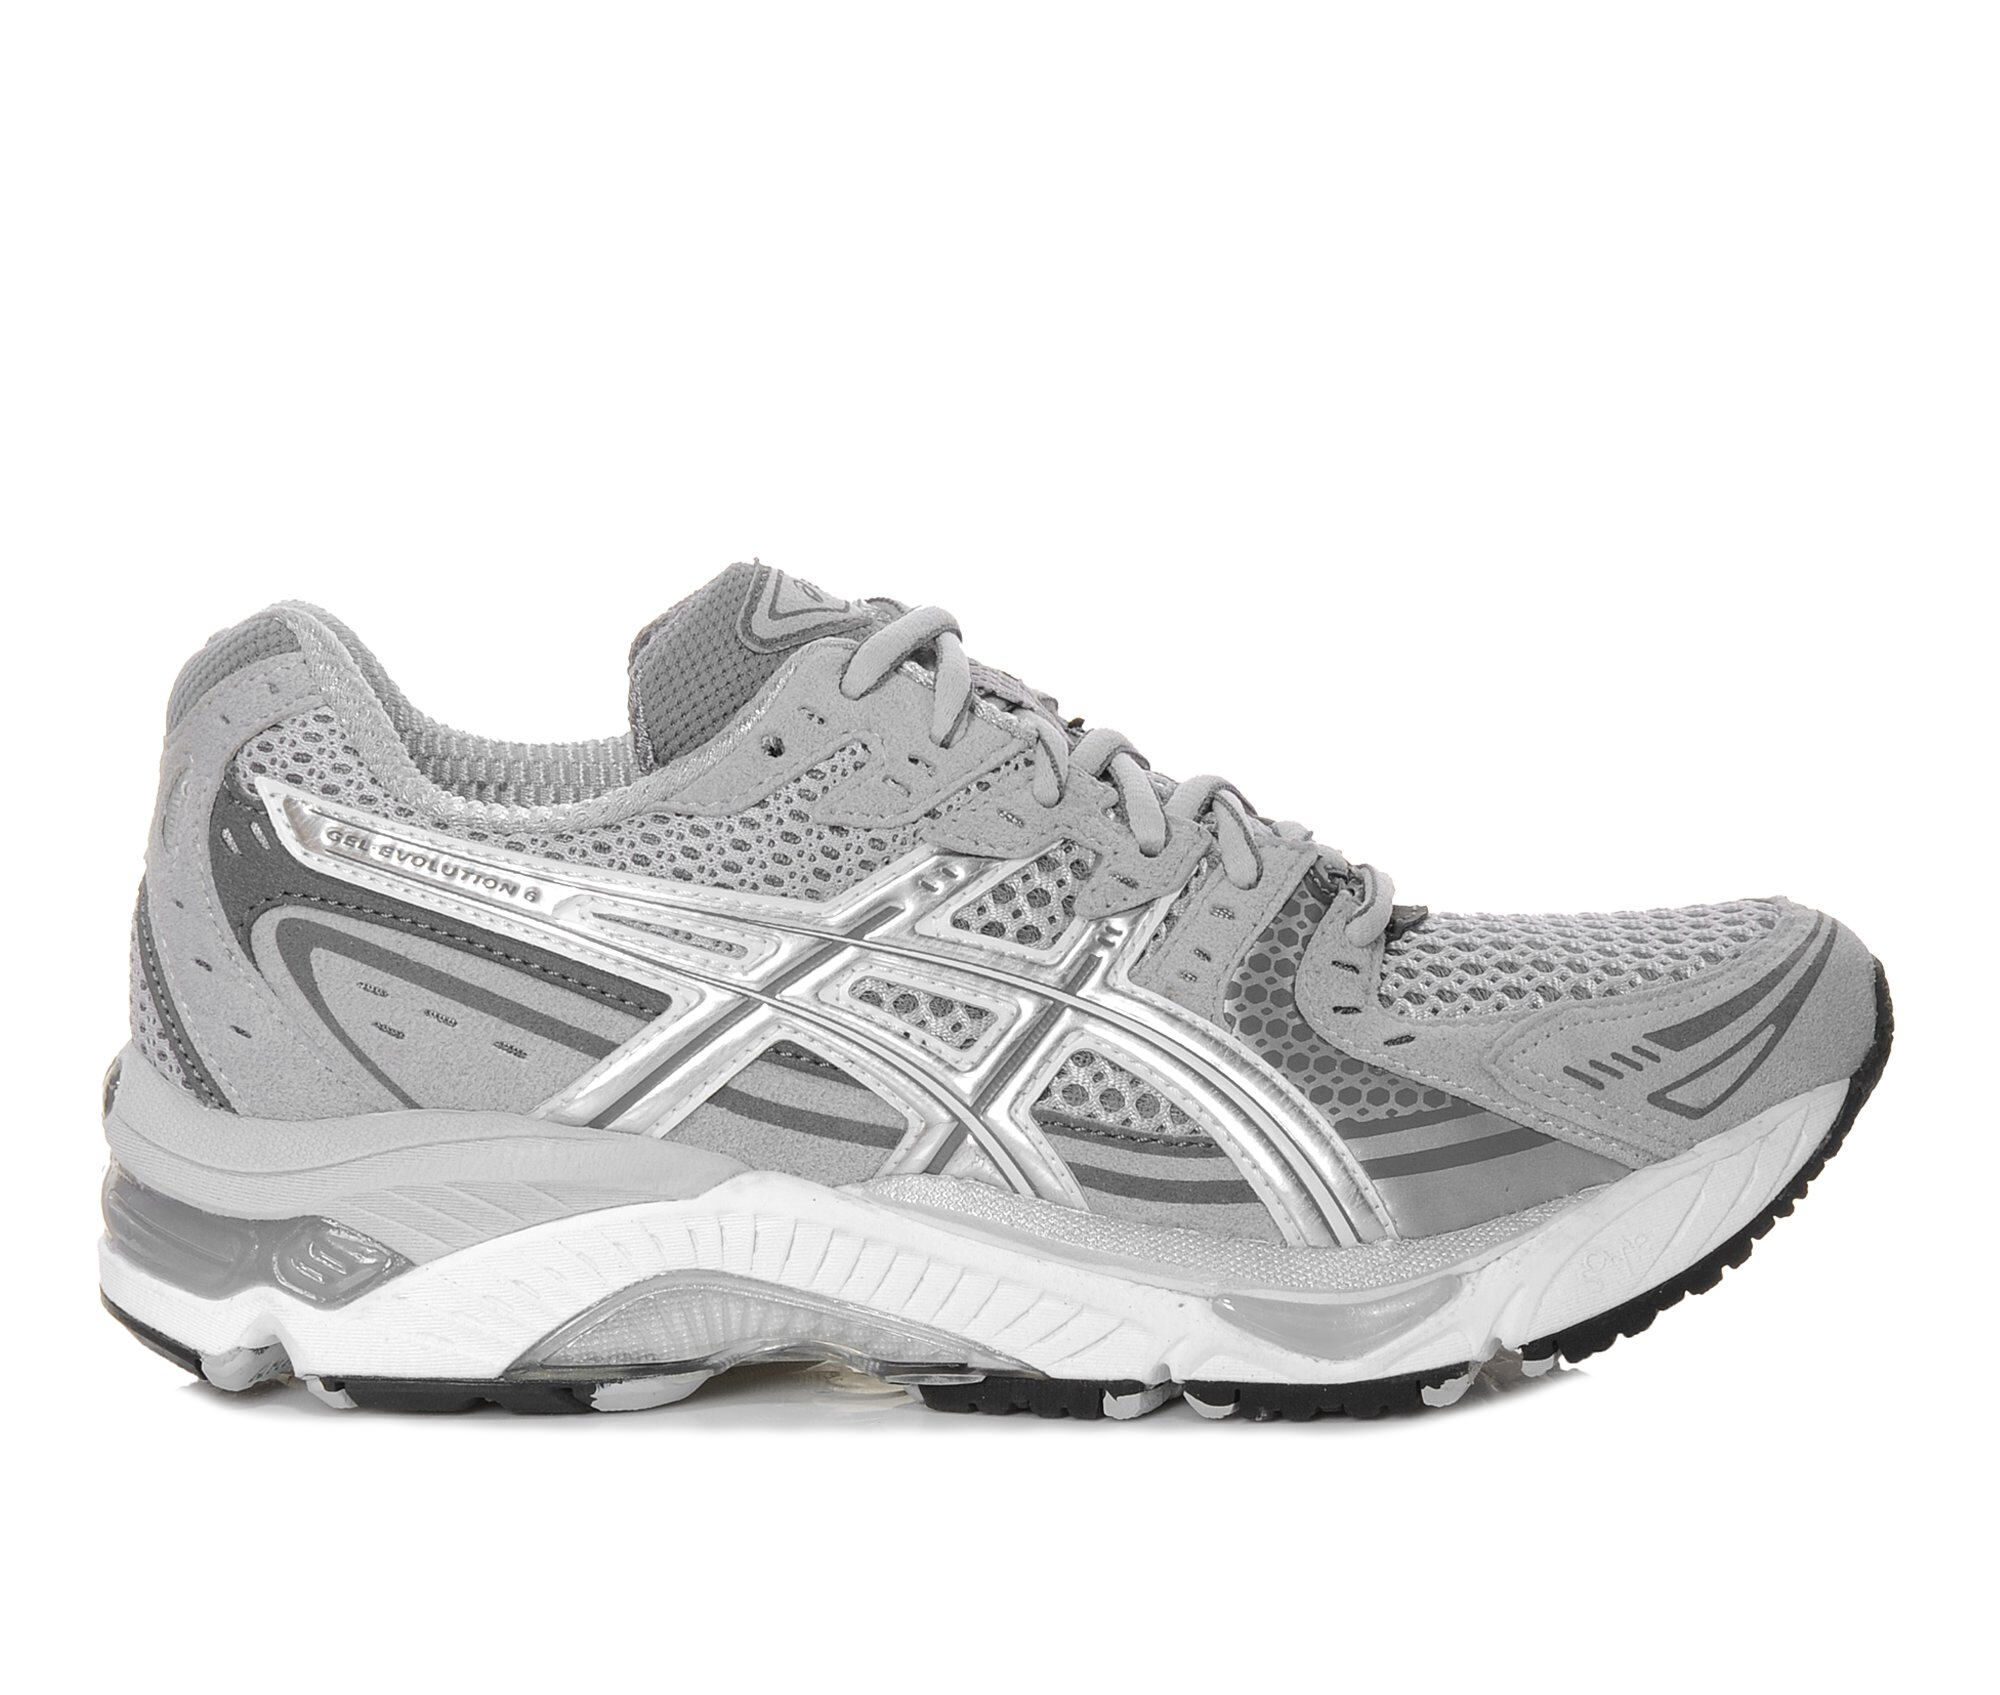 Women's ASICS Gel Evolution 6 Running Shoes Grey/White